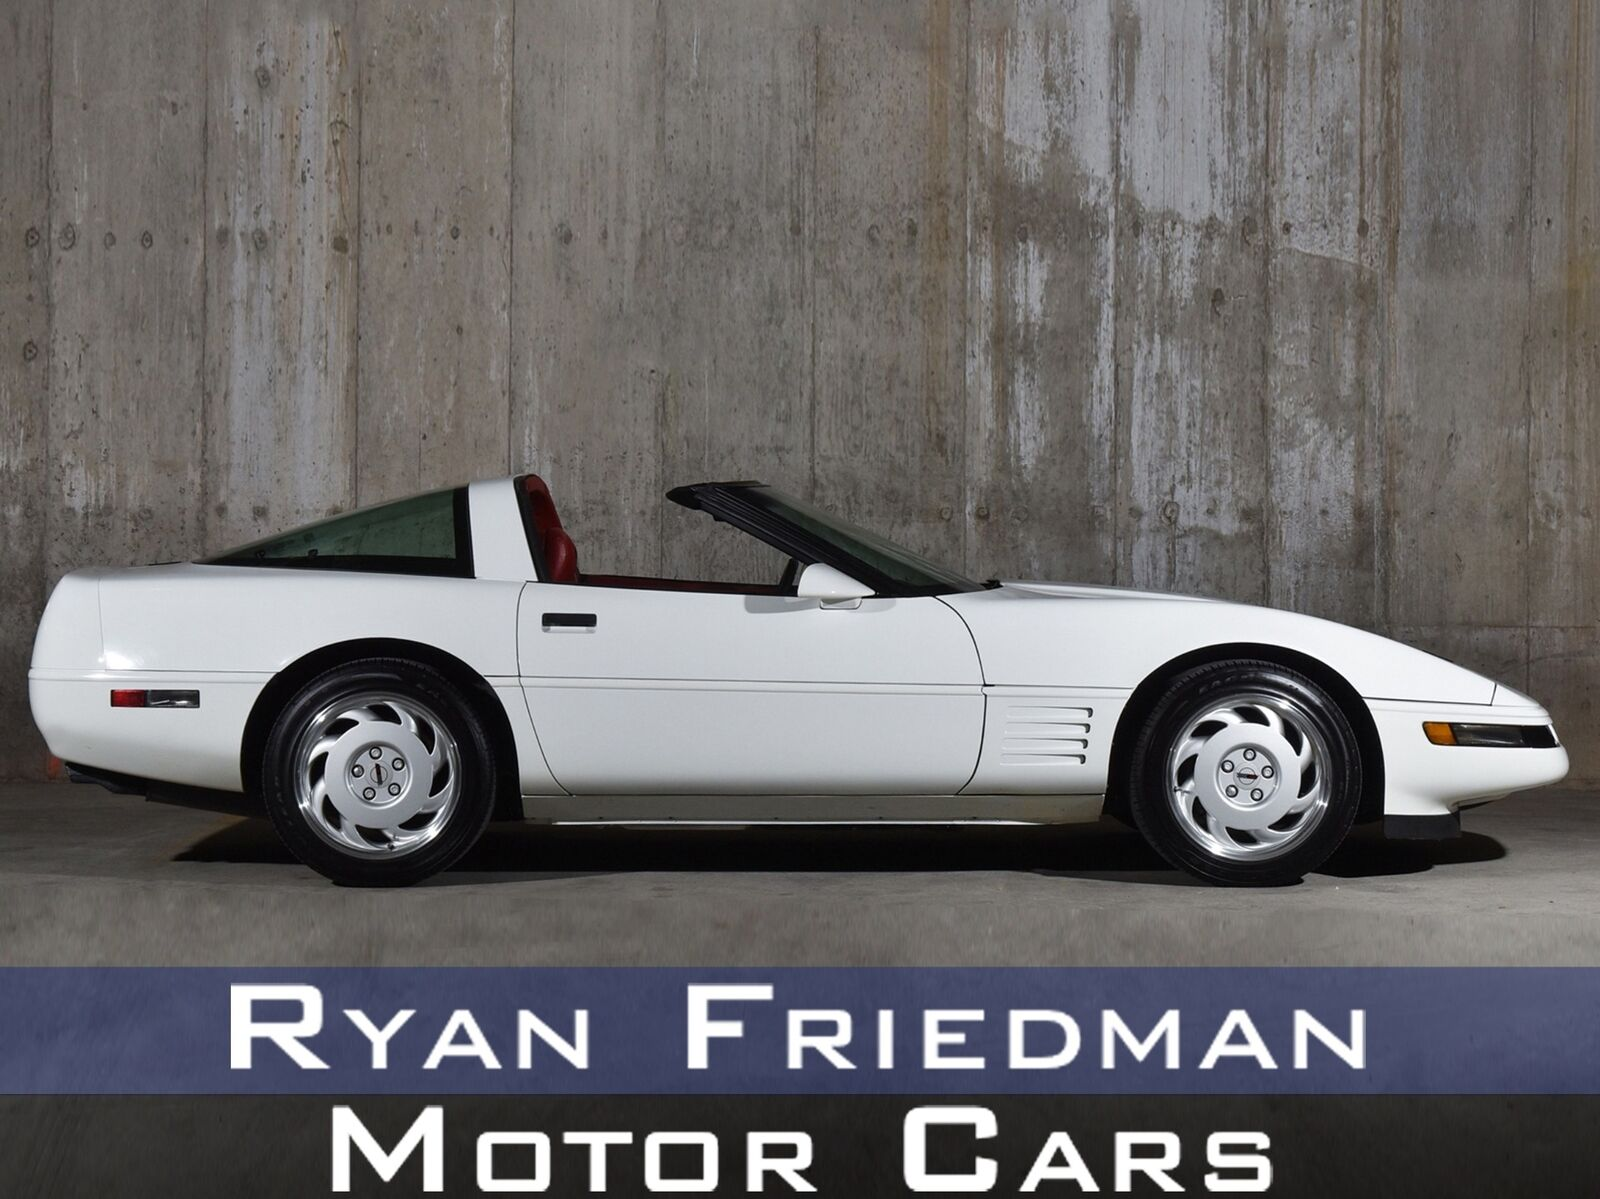 1992 White Chevrolet Corvette   | C4 Corvette Photo 1